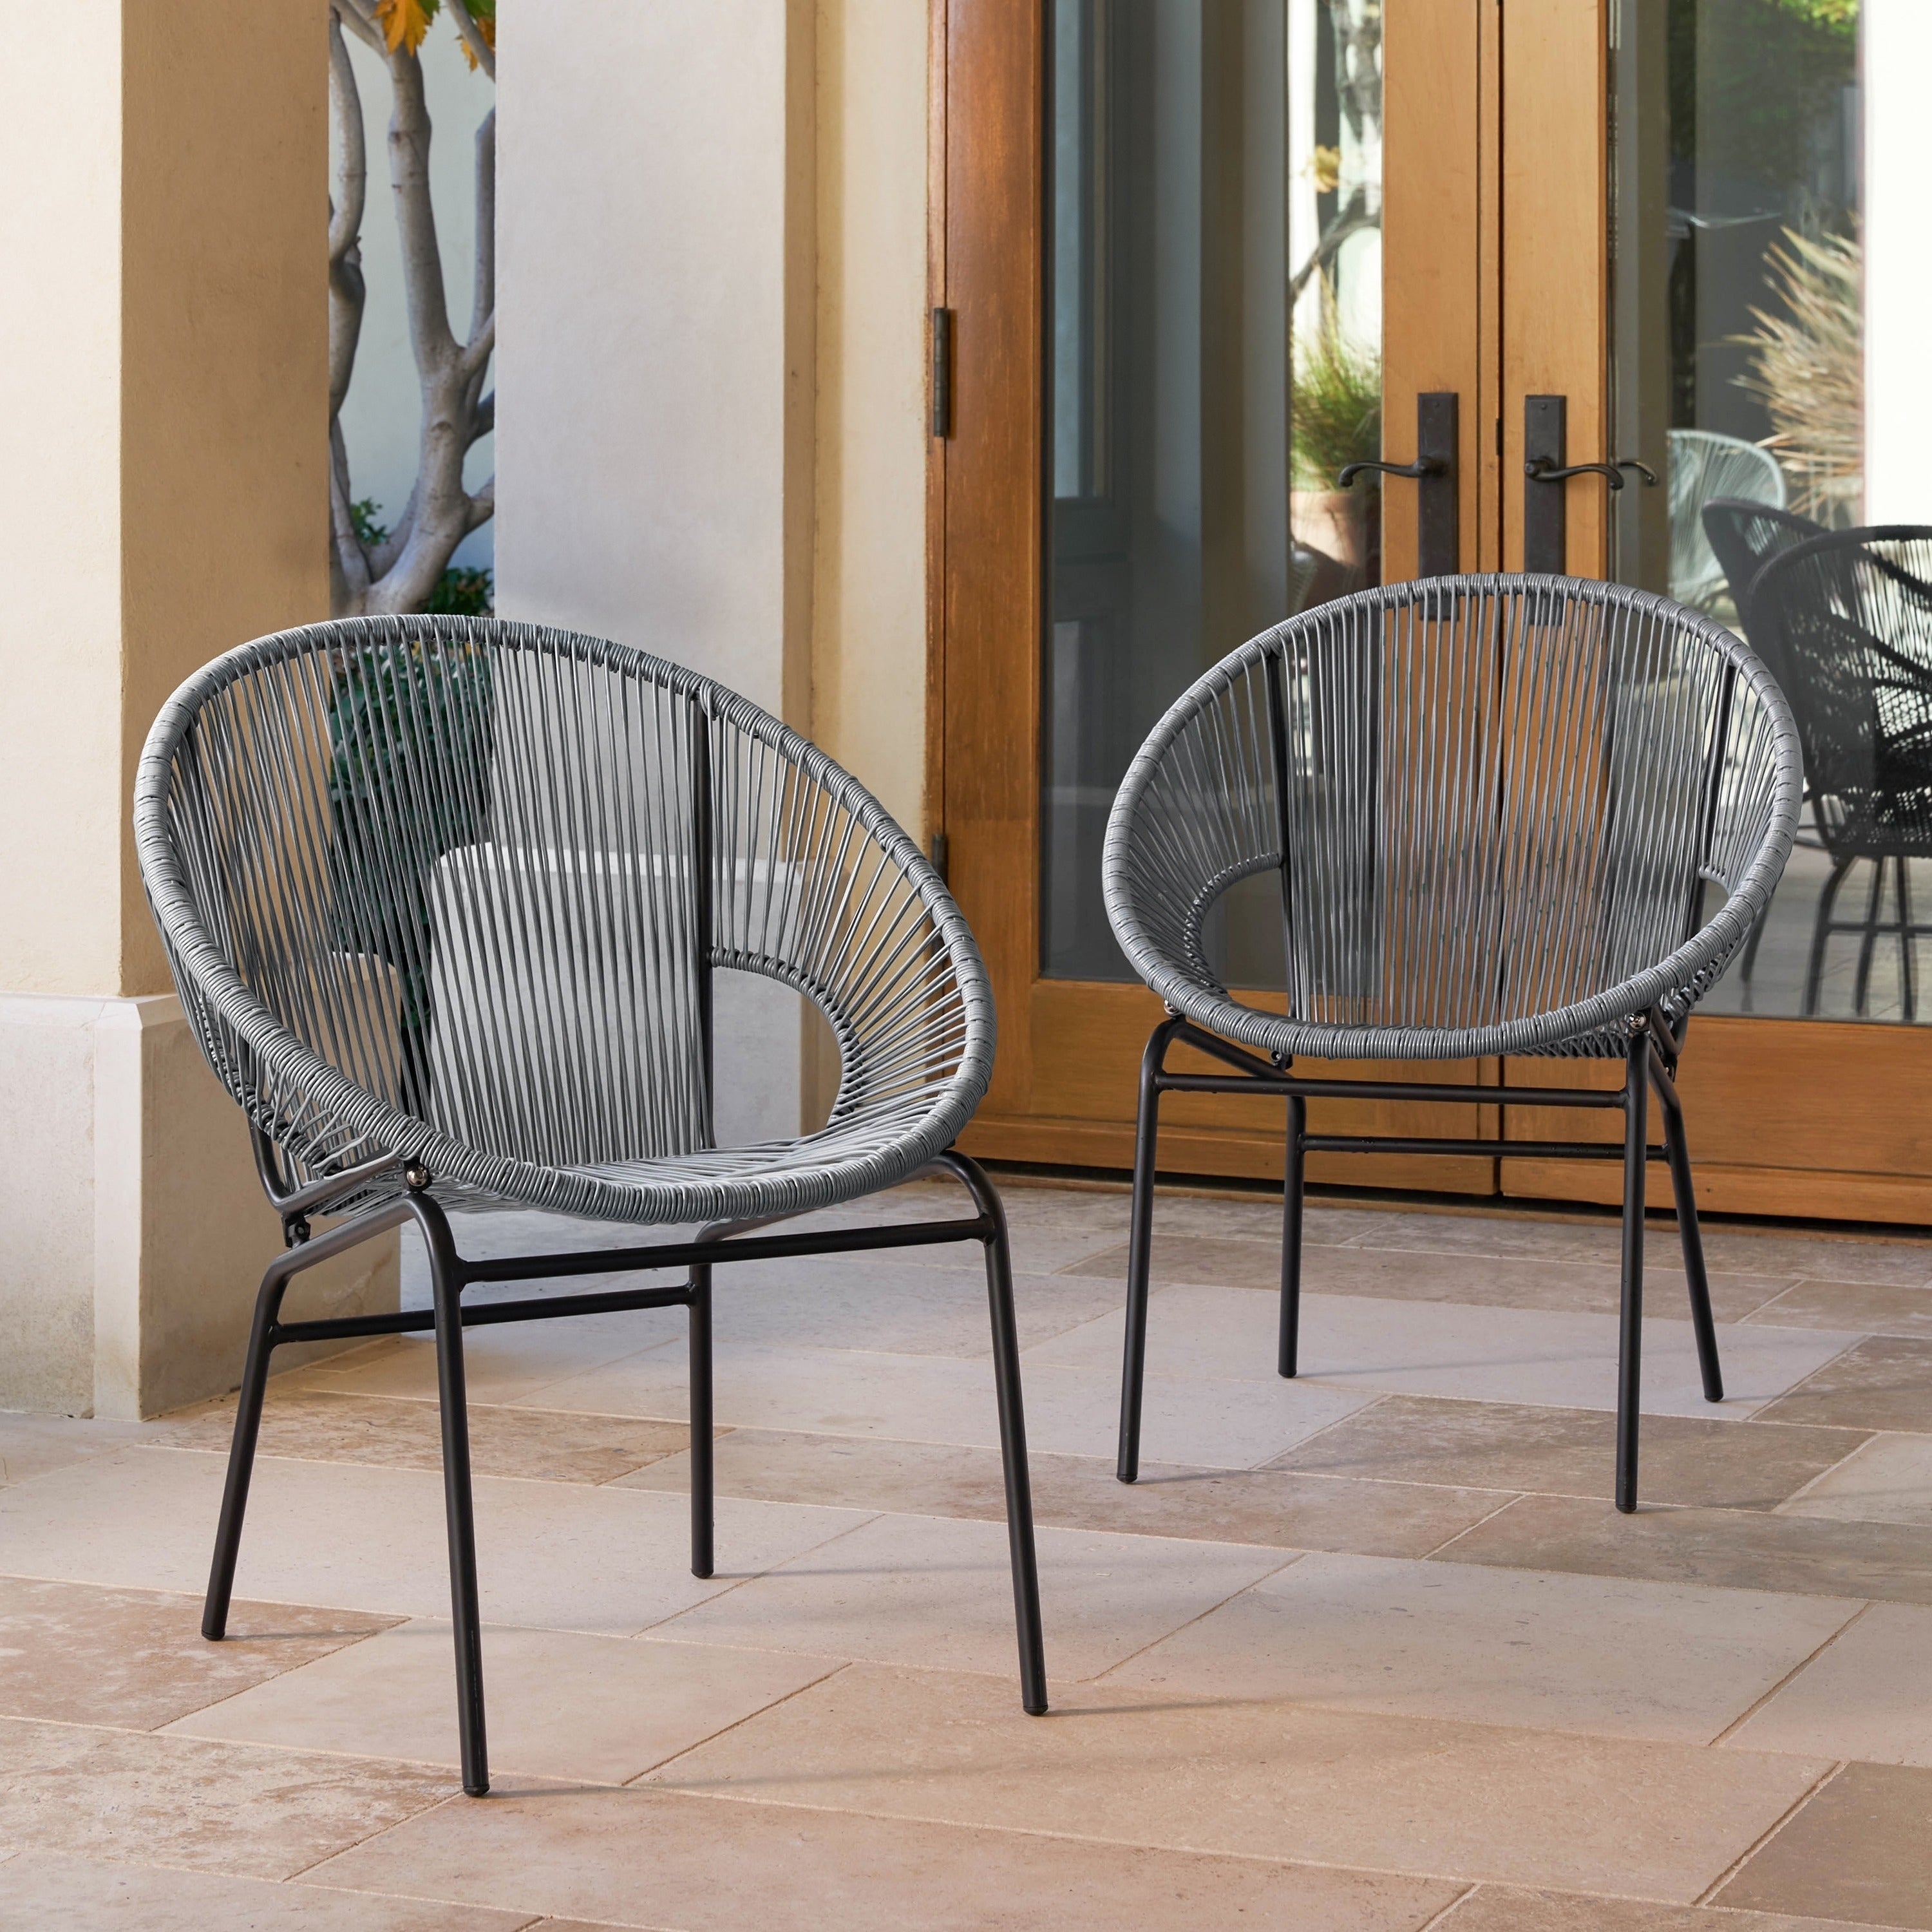 woven metal furniture. Shop Sarcelles Woven Wicker Patio Chairs By Corvus (Set Of 2) - Free Shipping Today Overstock.com 17805619 Metal Furniture